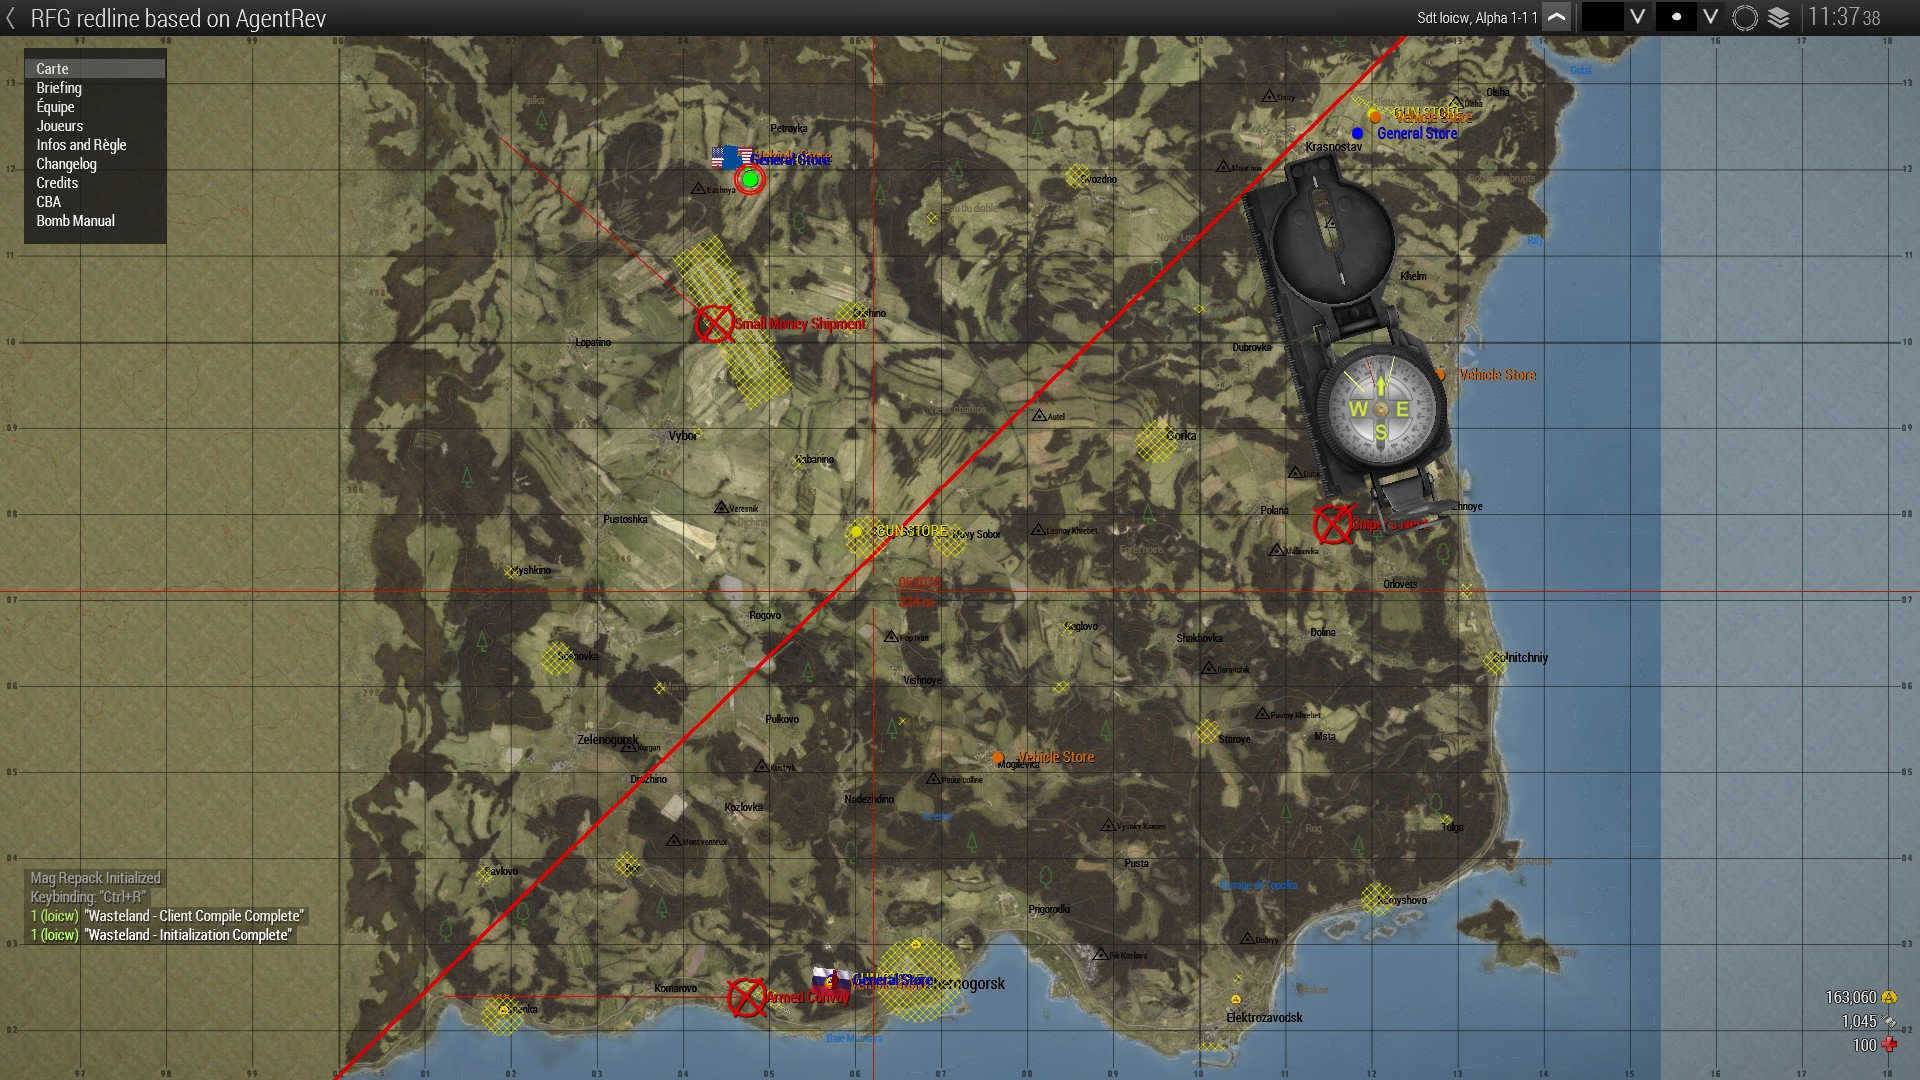 MGI ADVANCED MODULES - ARMA 3 - ADDONS & MODS: COMPLETE